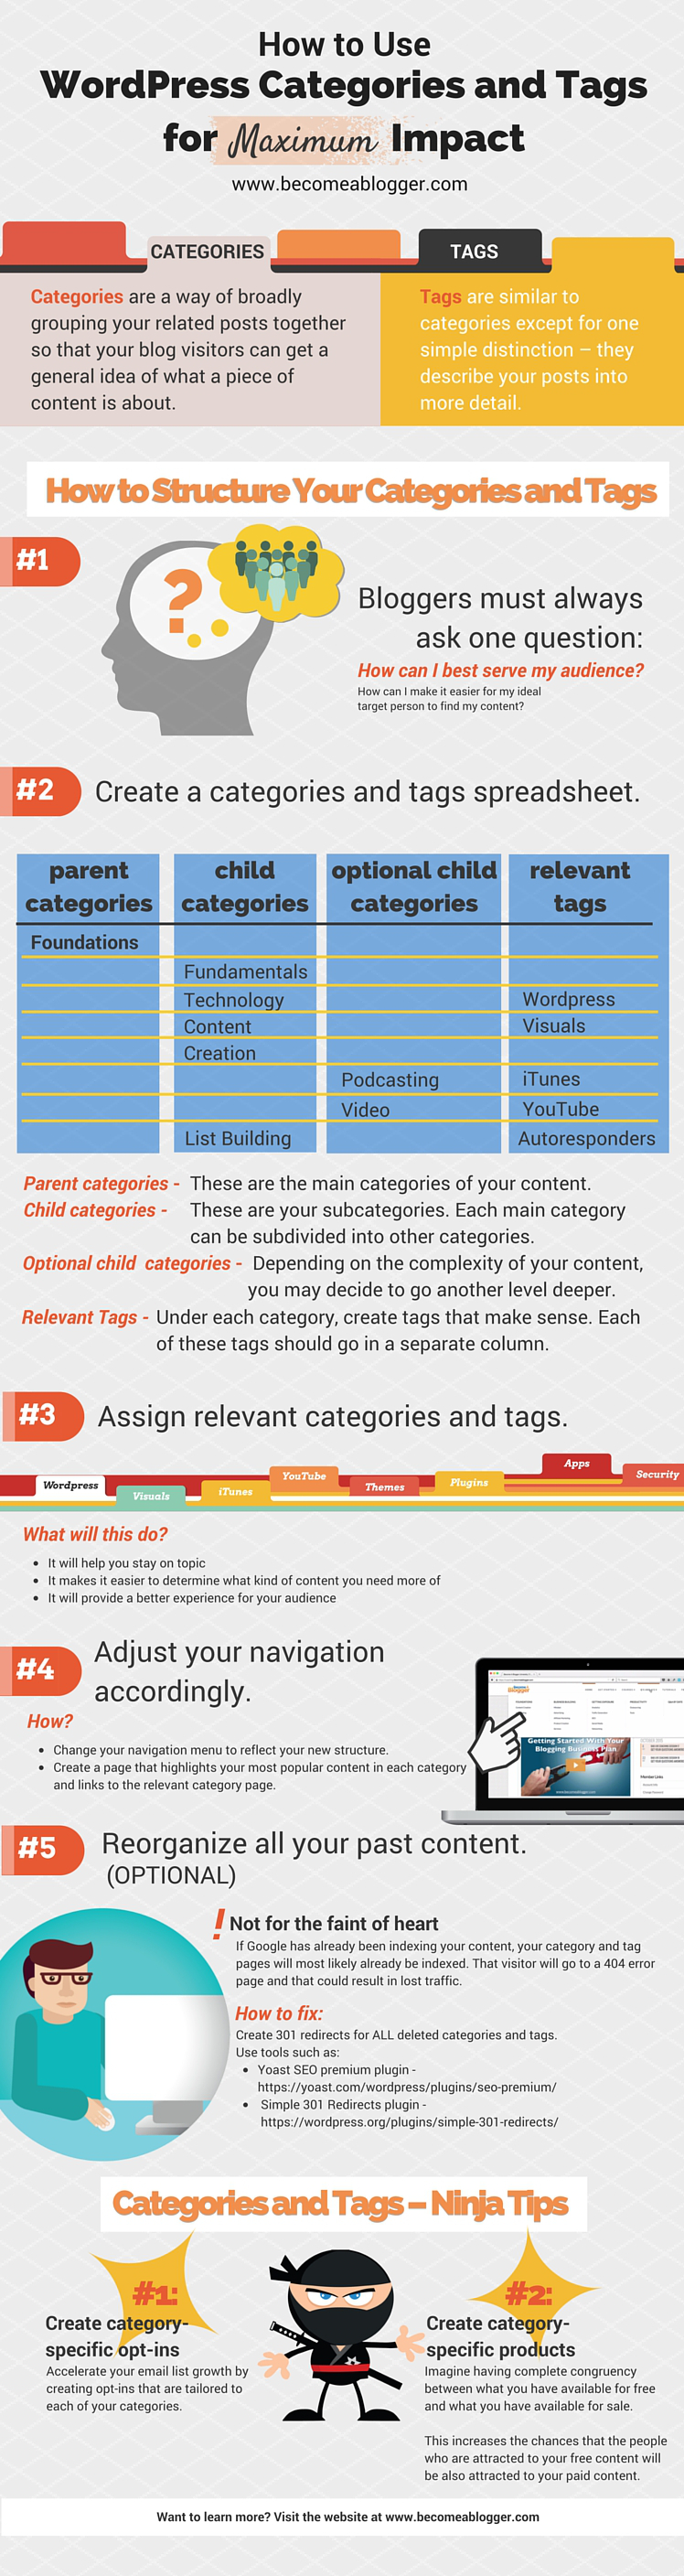 233_Categories_Tags_Infographic_1